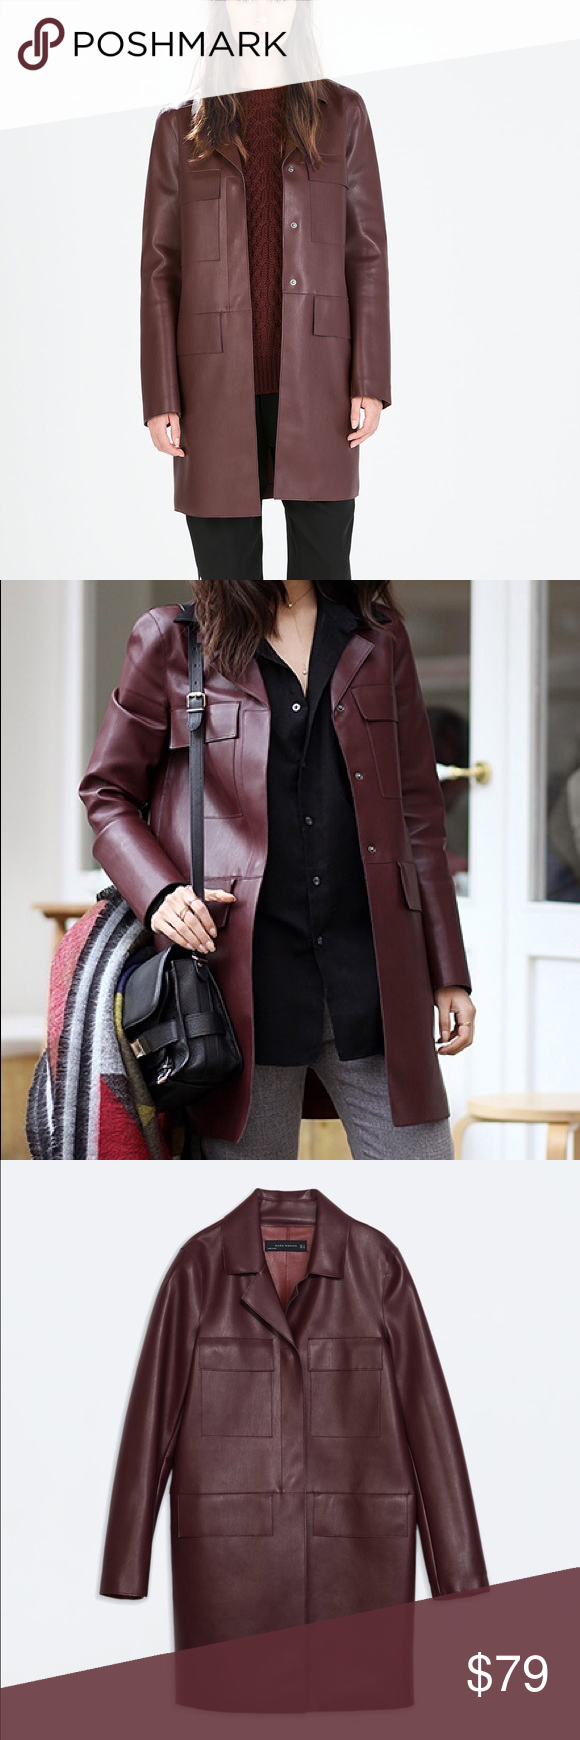 Zara faux leather coat size small Straight polished